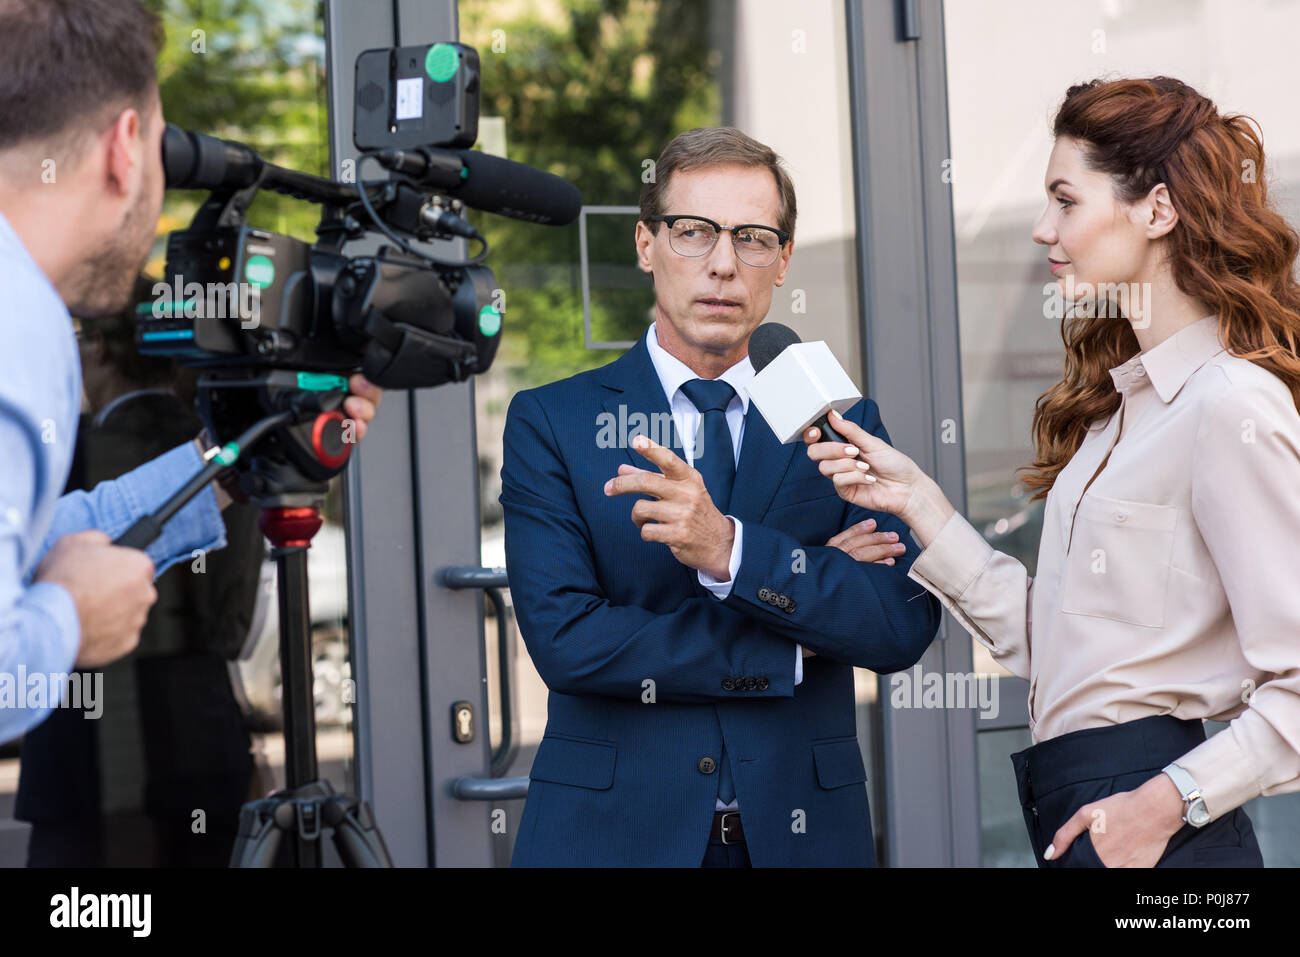 professional cameraman and news reporter talking with serious businessman - Stock Image